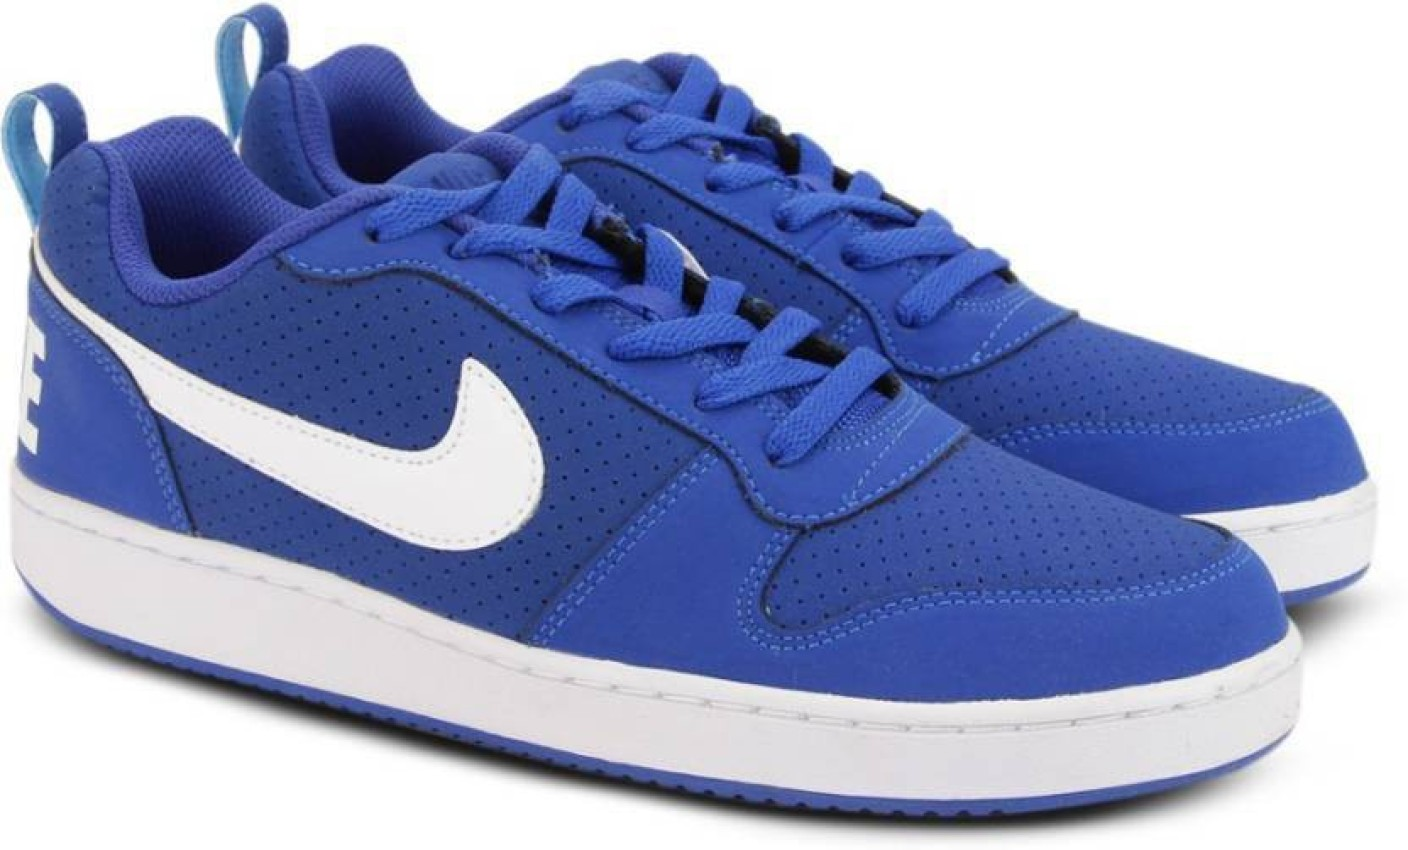 Nike COURT BOROUGH LOW Sneakers For Men. Share